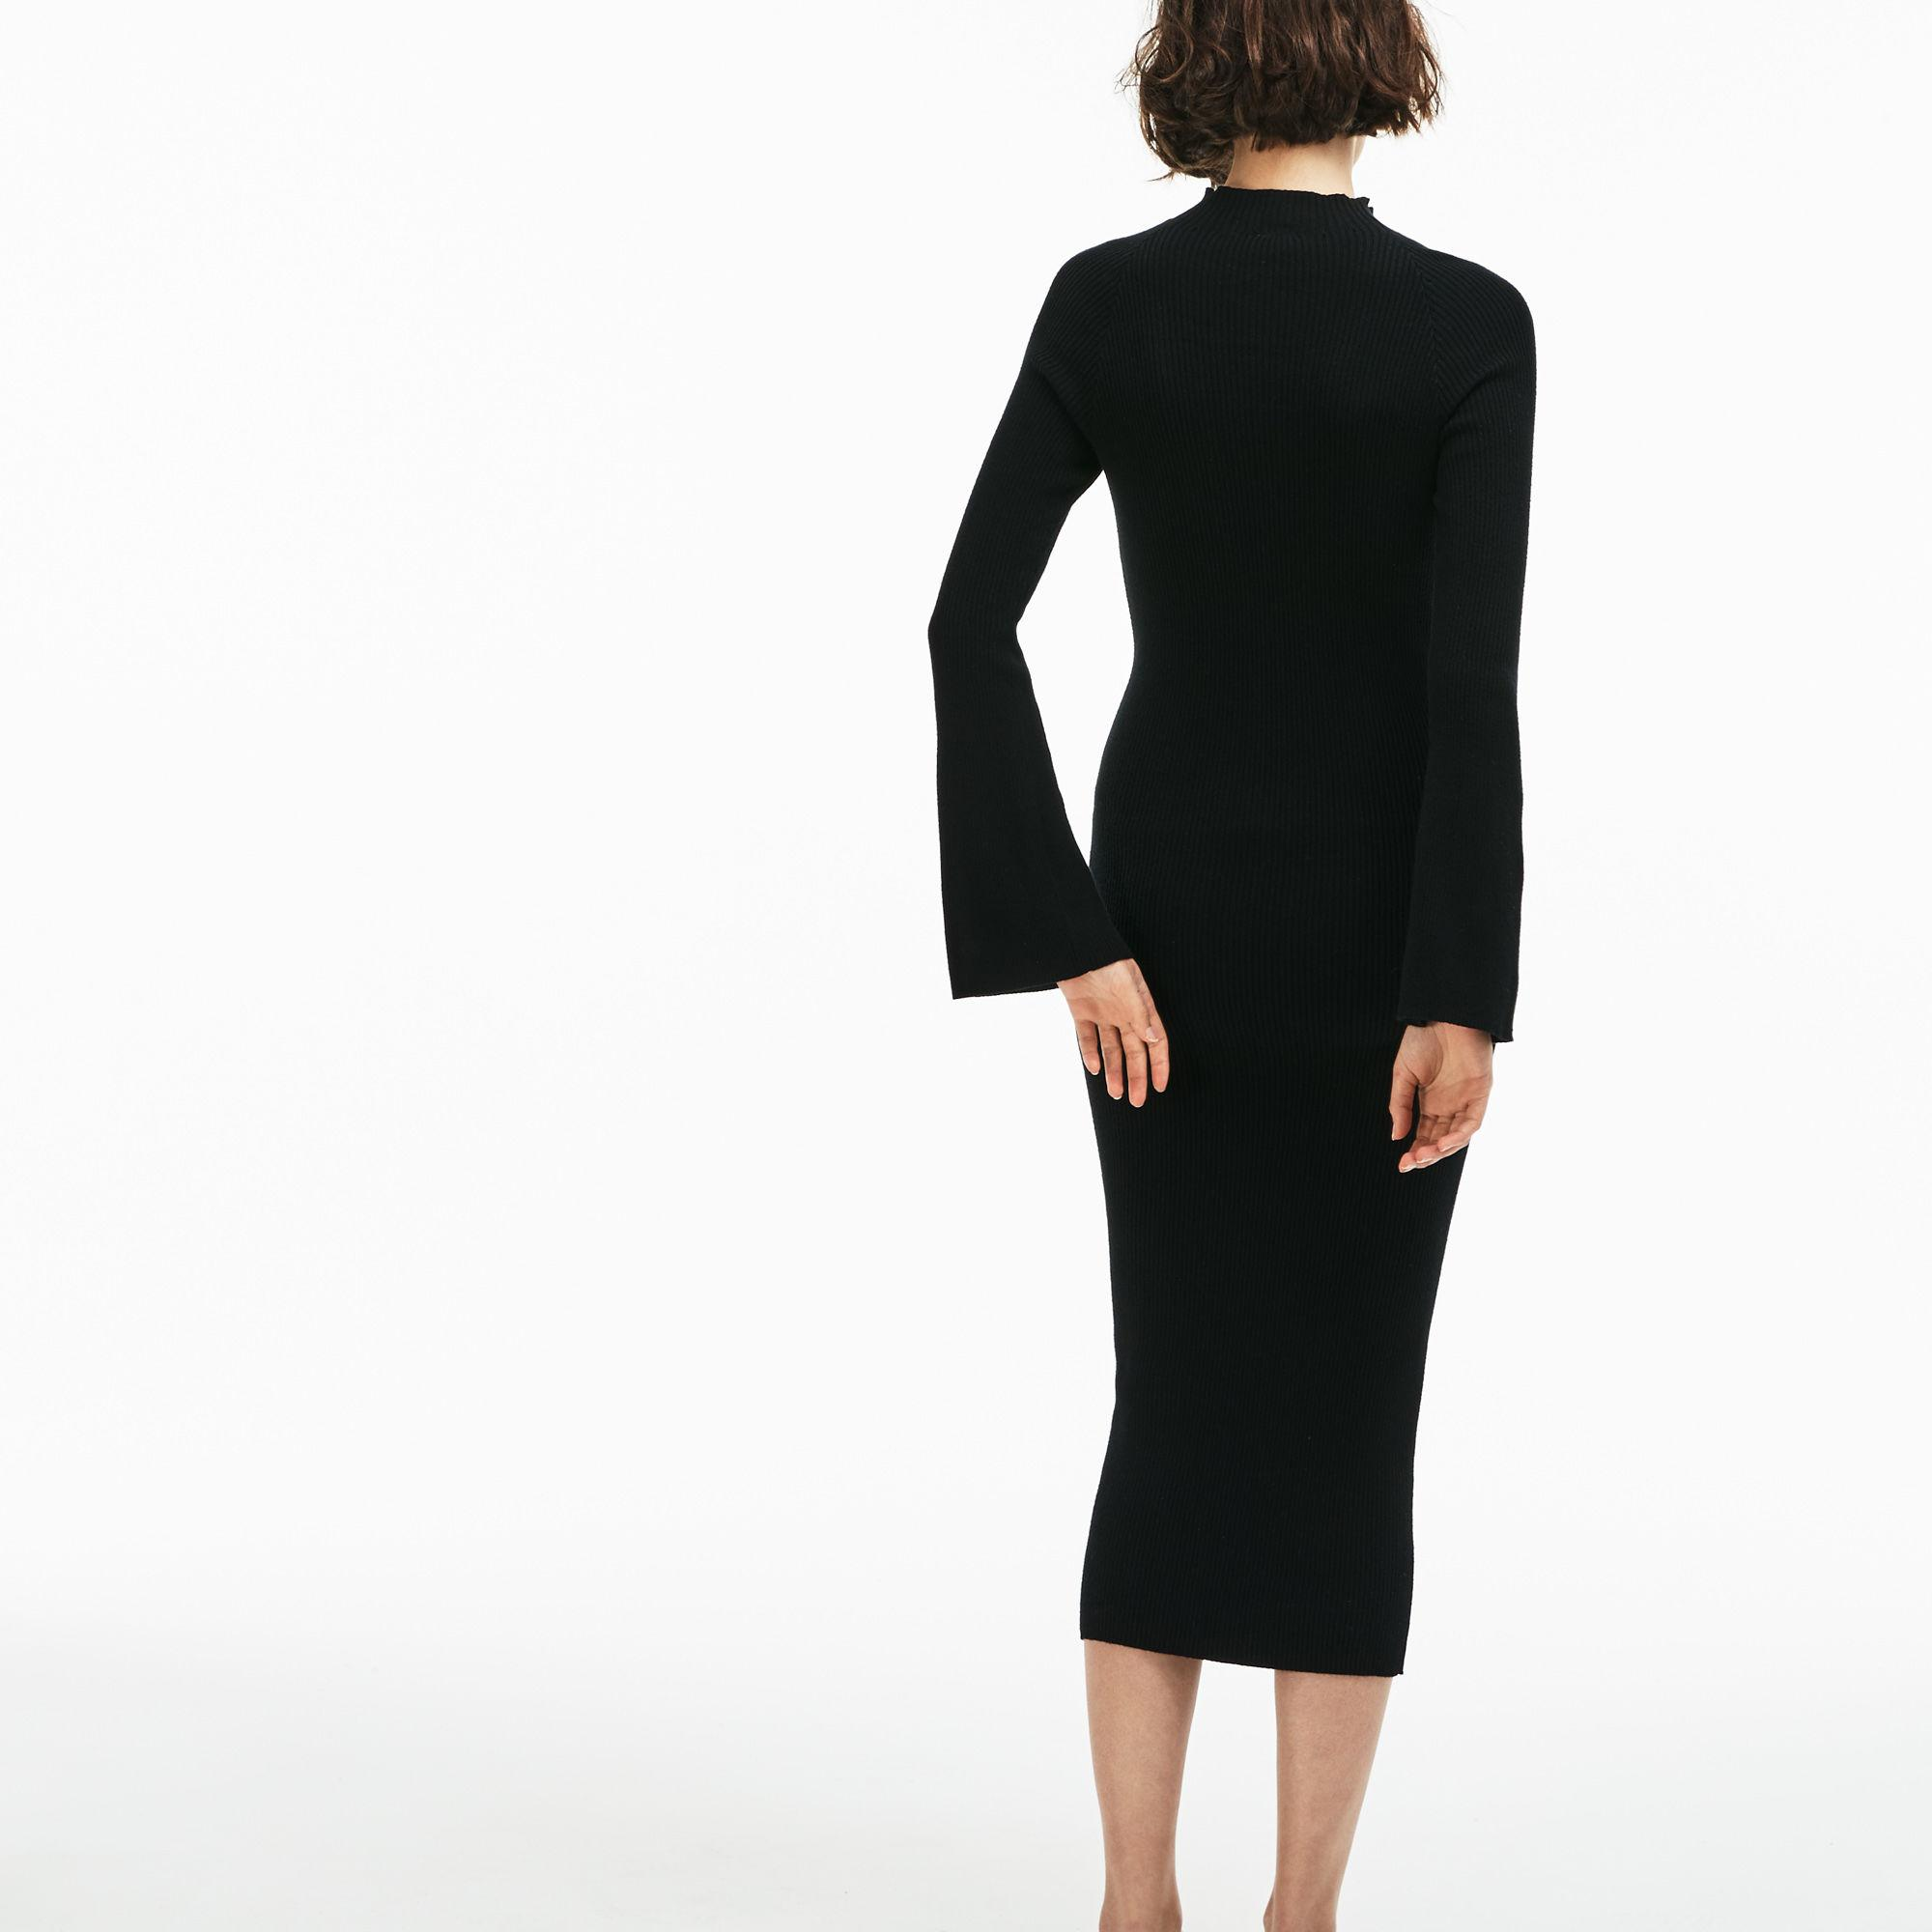 cec1c5fe40 Lacoste Black Live Close-fitting Ribbed Cotton And Cashmere Dress